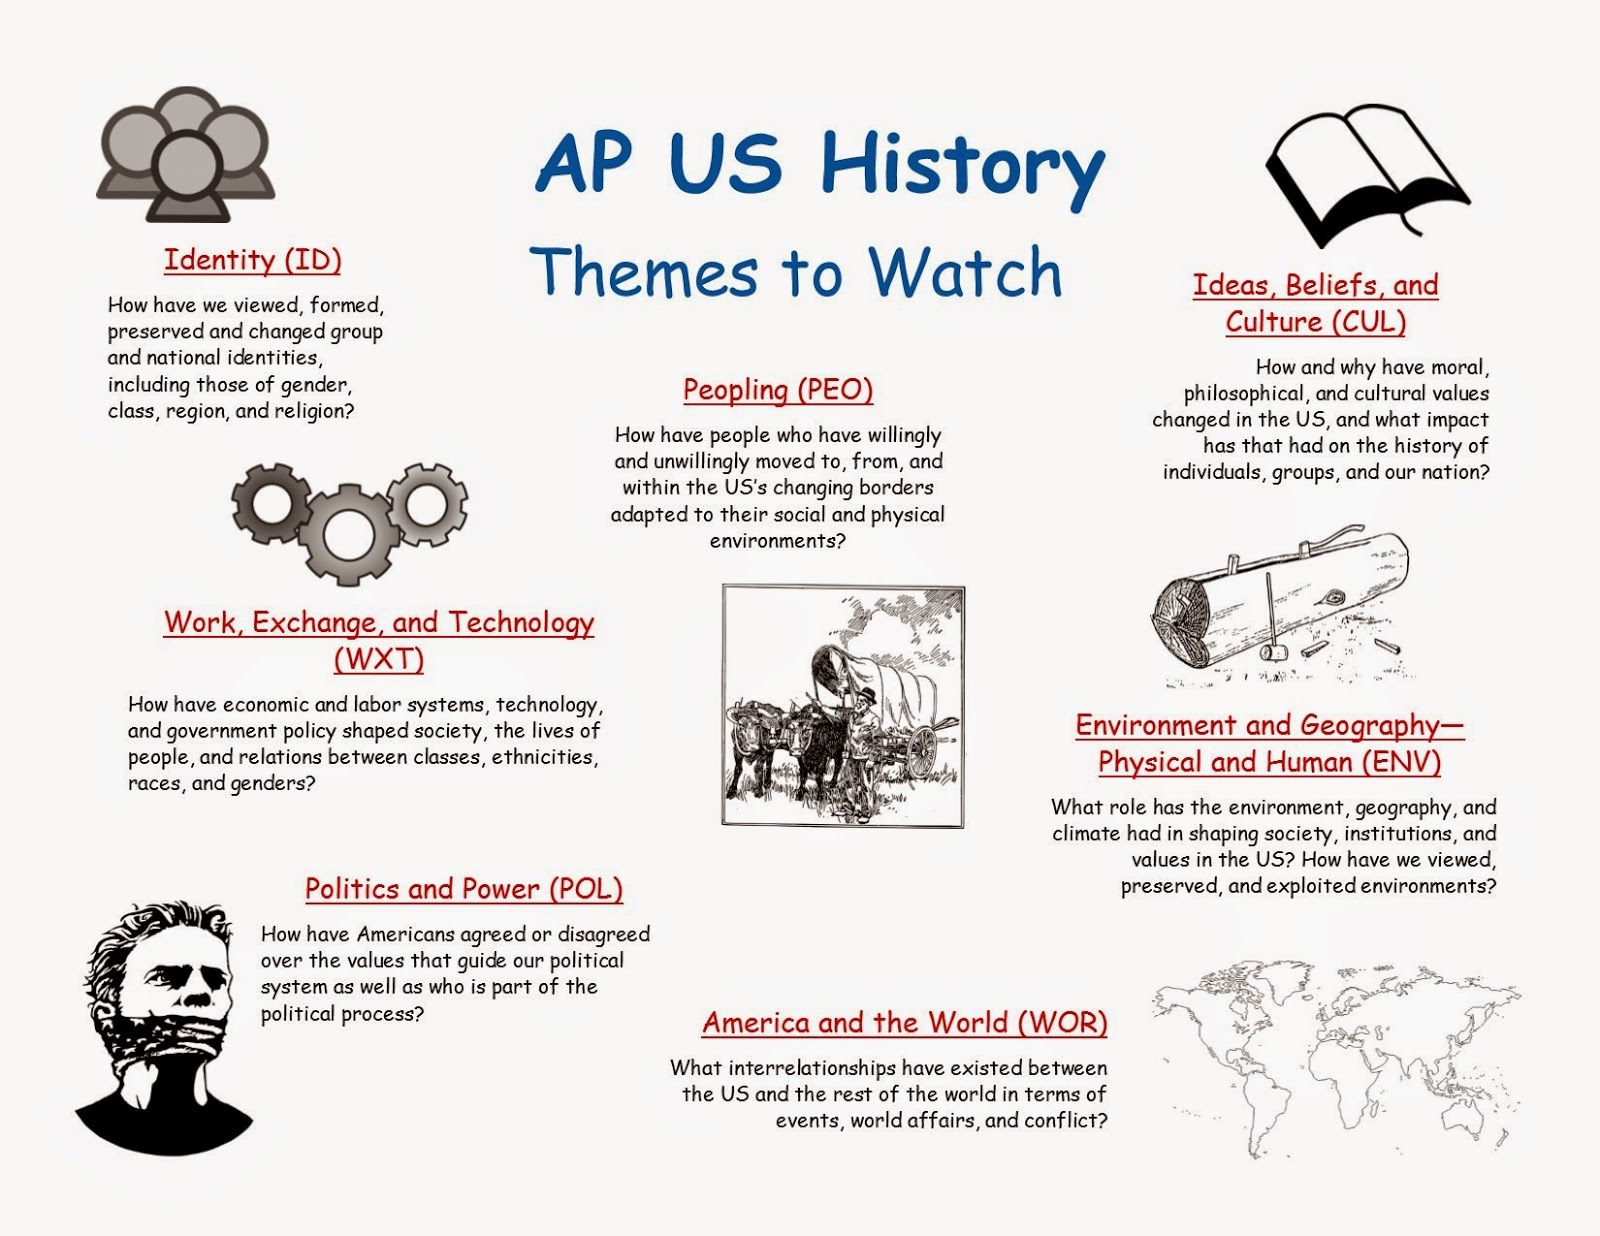 ap us history essay on cold war Ever wondered what really happened during the cold war this ap us history crash course will cover all the major aspects of this tense time.